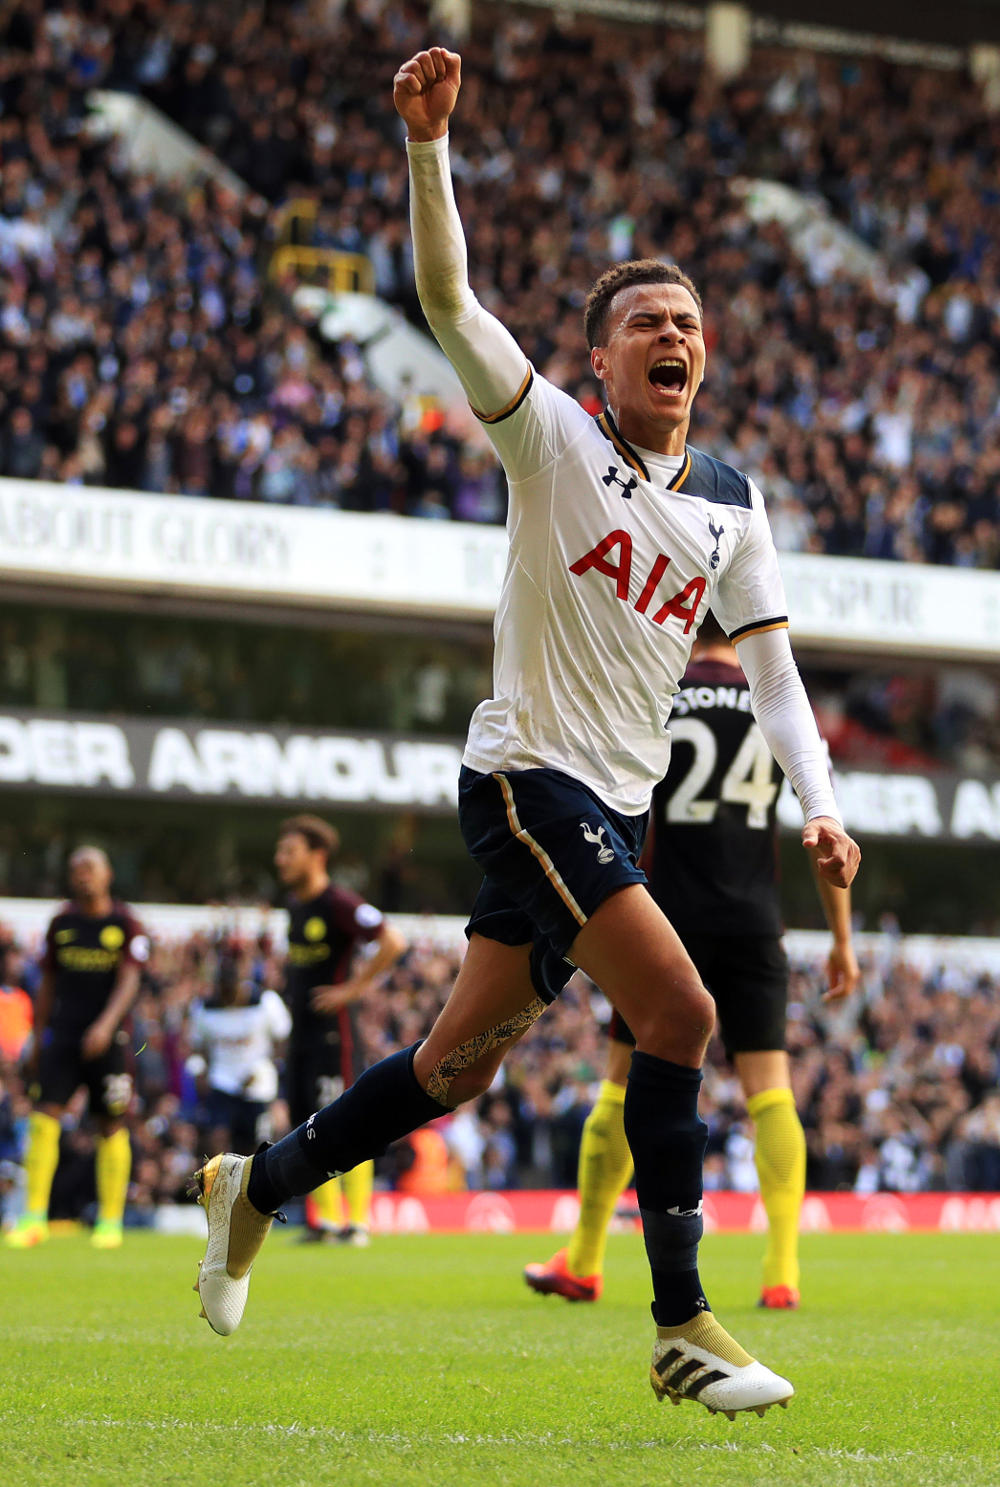 dele-alli-tottenham-hotspur-epl-football-premier-league-2016-tall